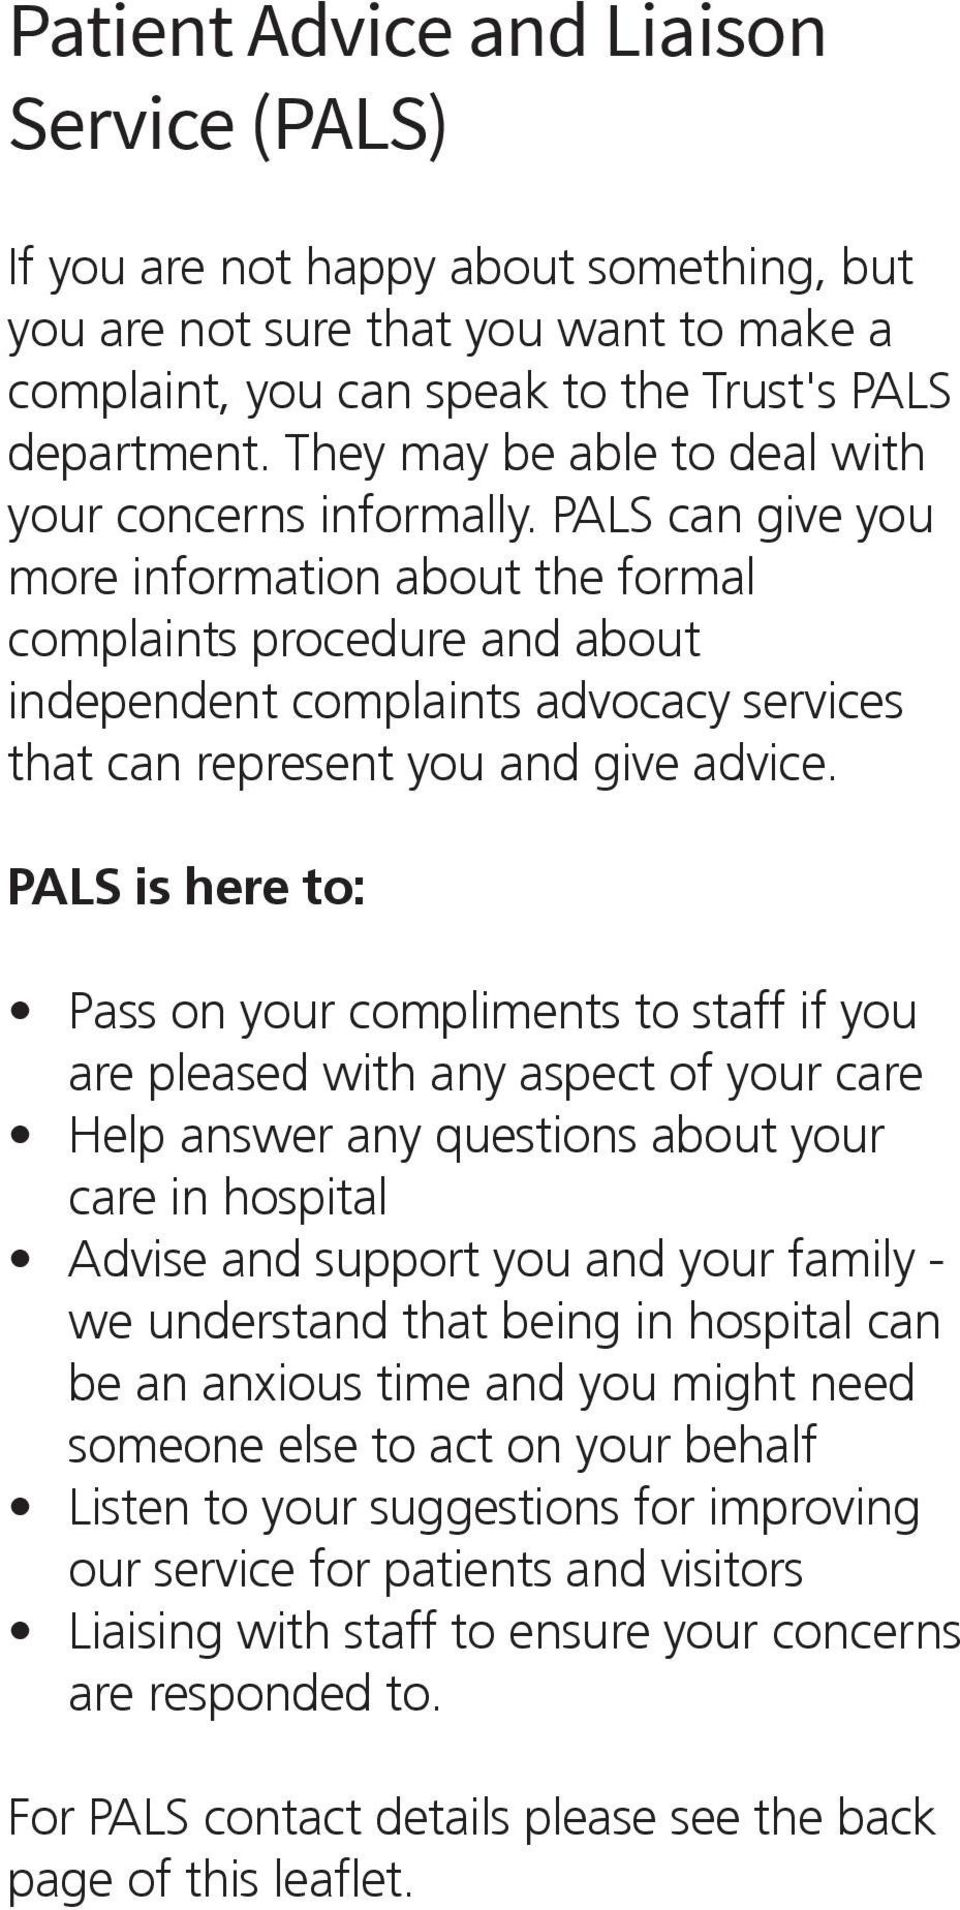 PALS can give you more information about the formal complaints procedure and about independent complaints advocacy services that can represent you and give advice.